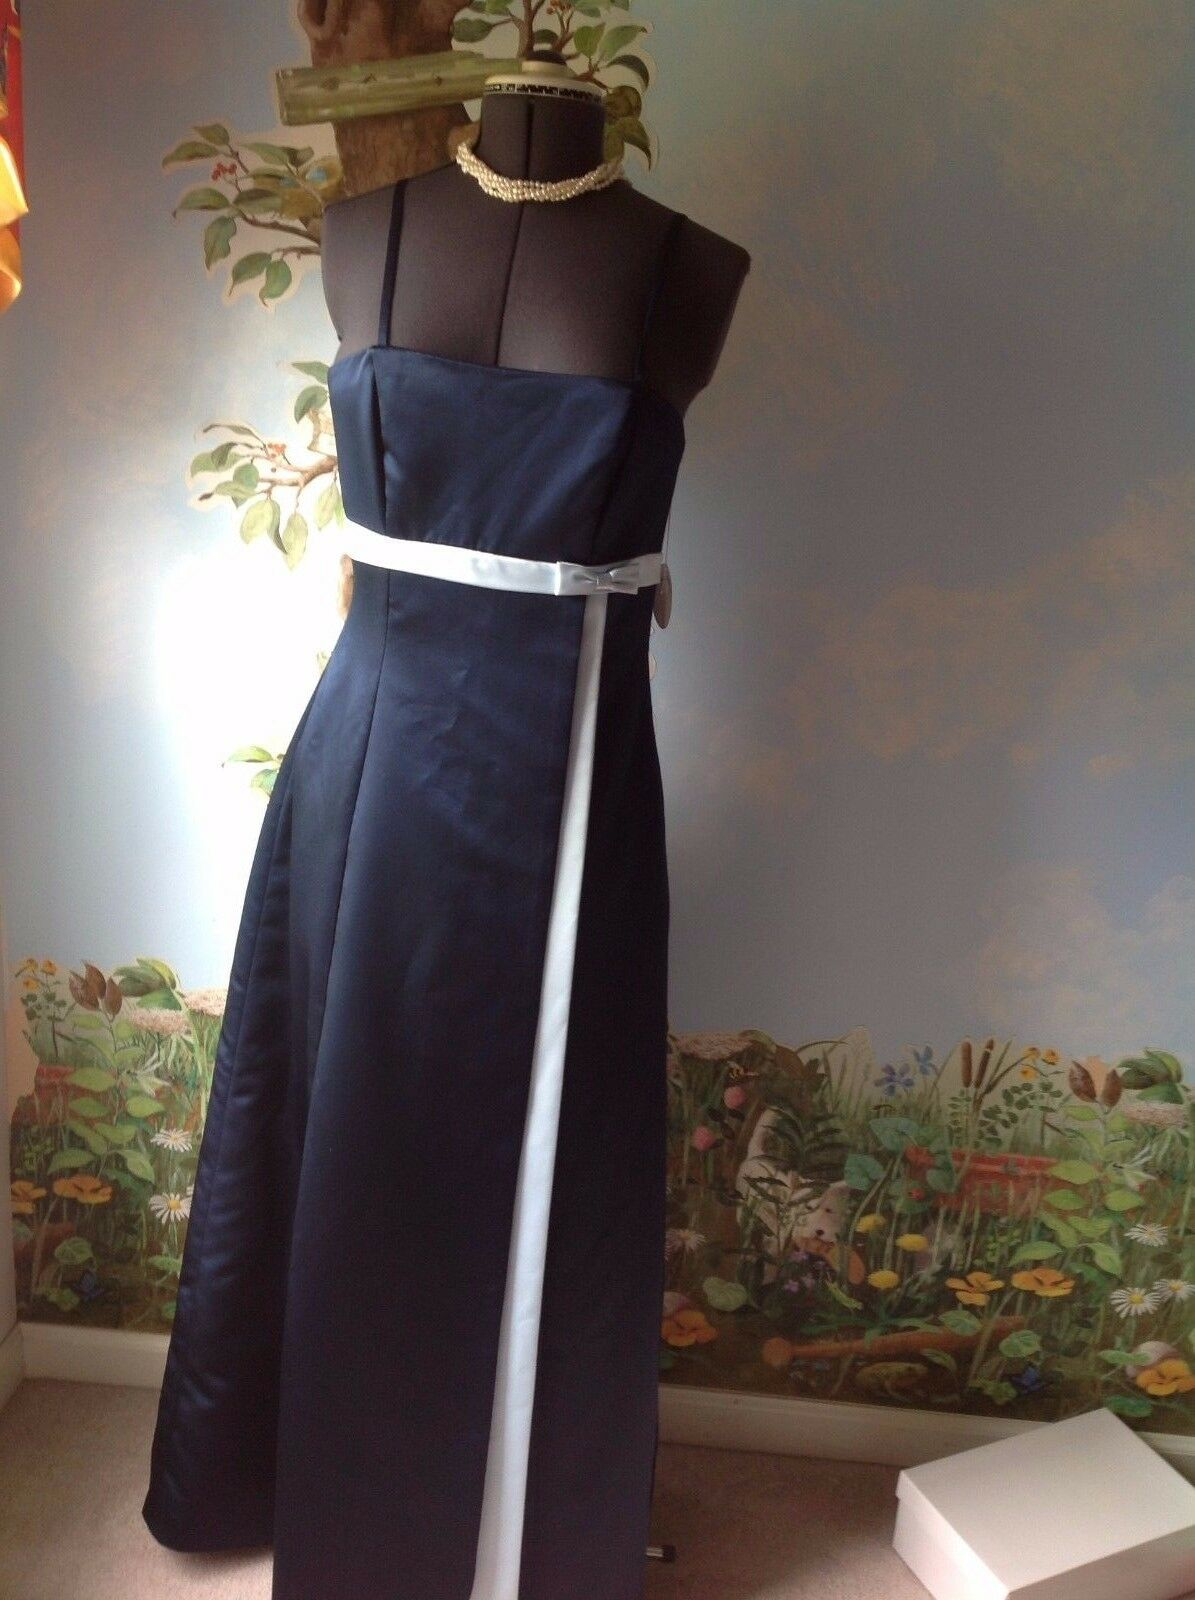 Da Vinci bluee Prom Dress Formal Homecoming Maxi Long bluee Dress Size 14